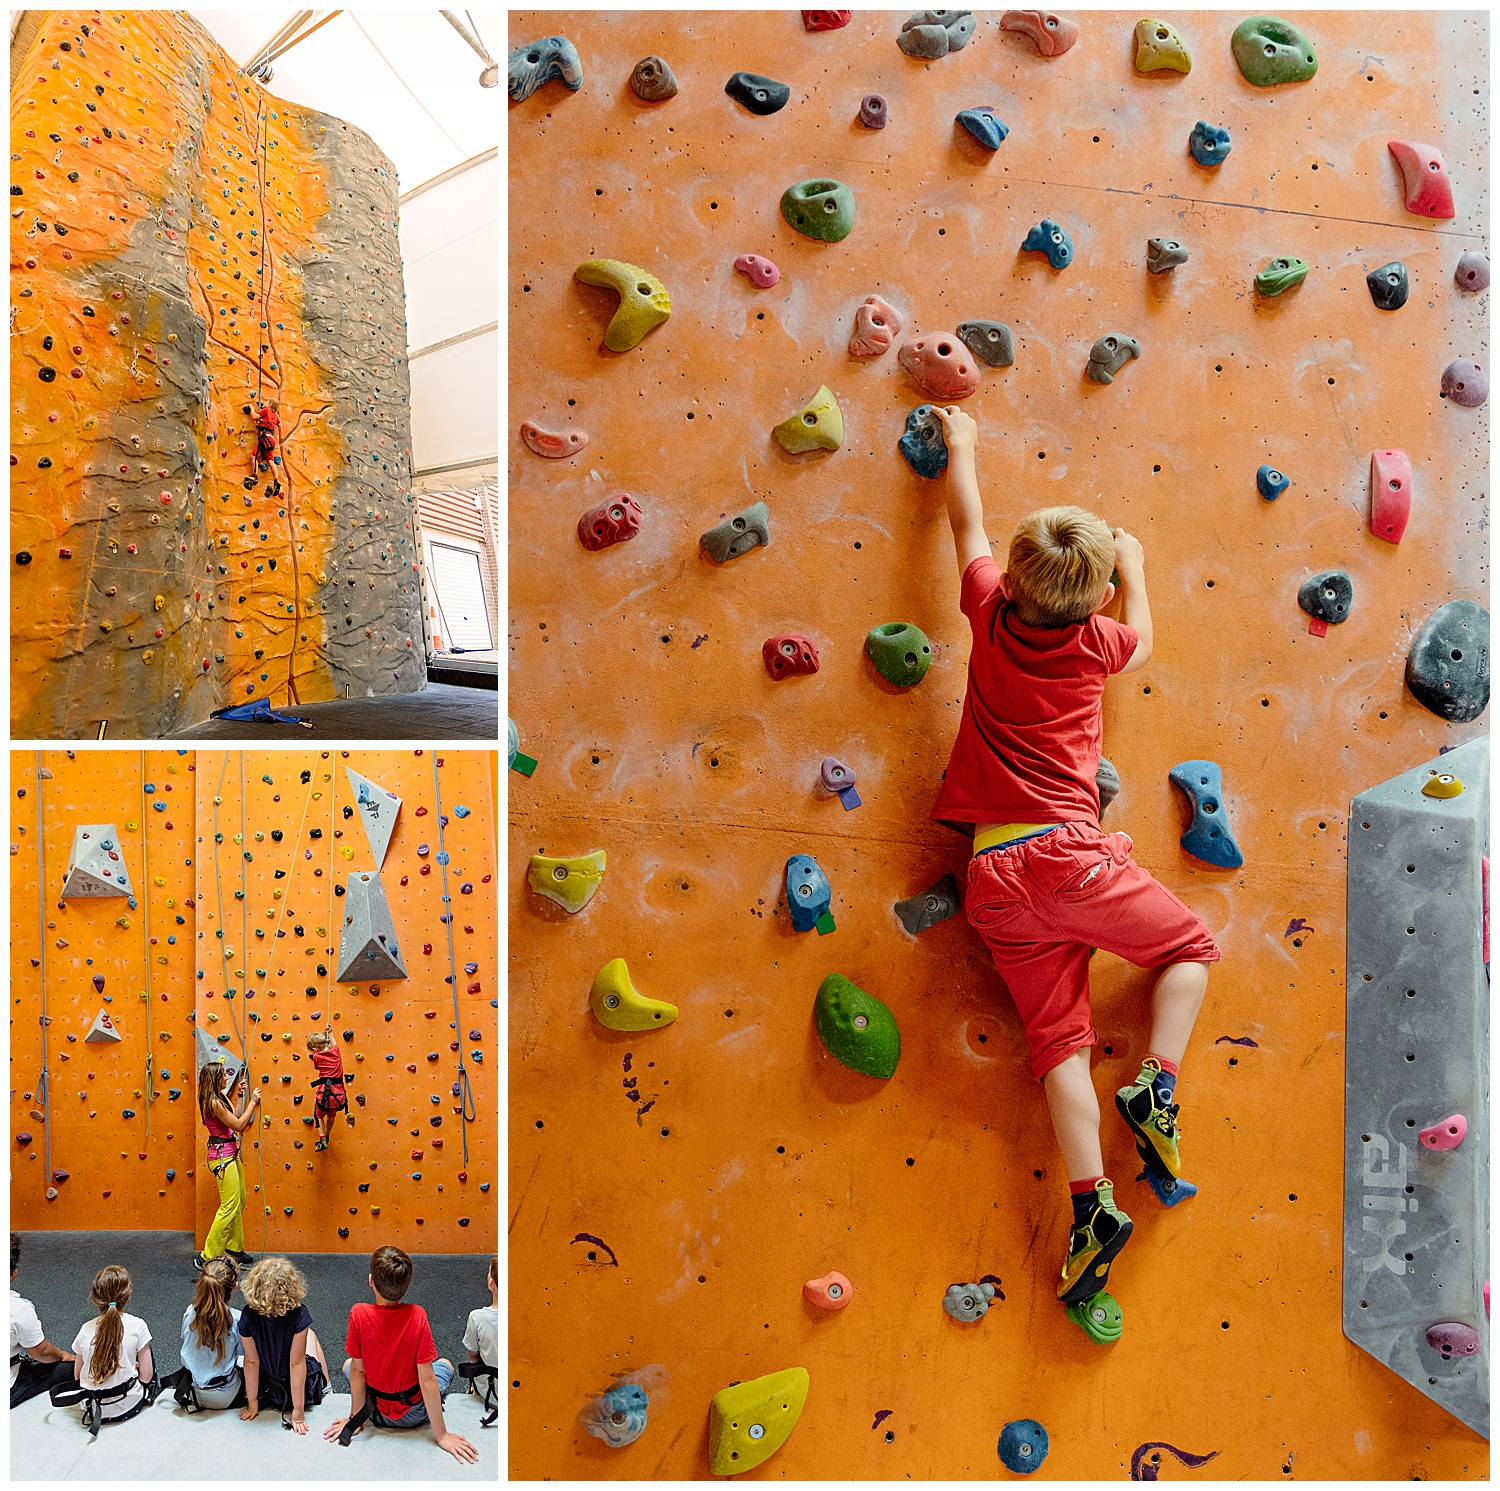 Montage of images of a child climbing up a bright orange climbing wall